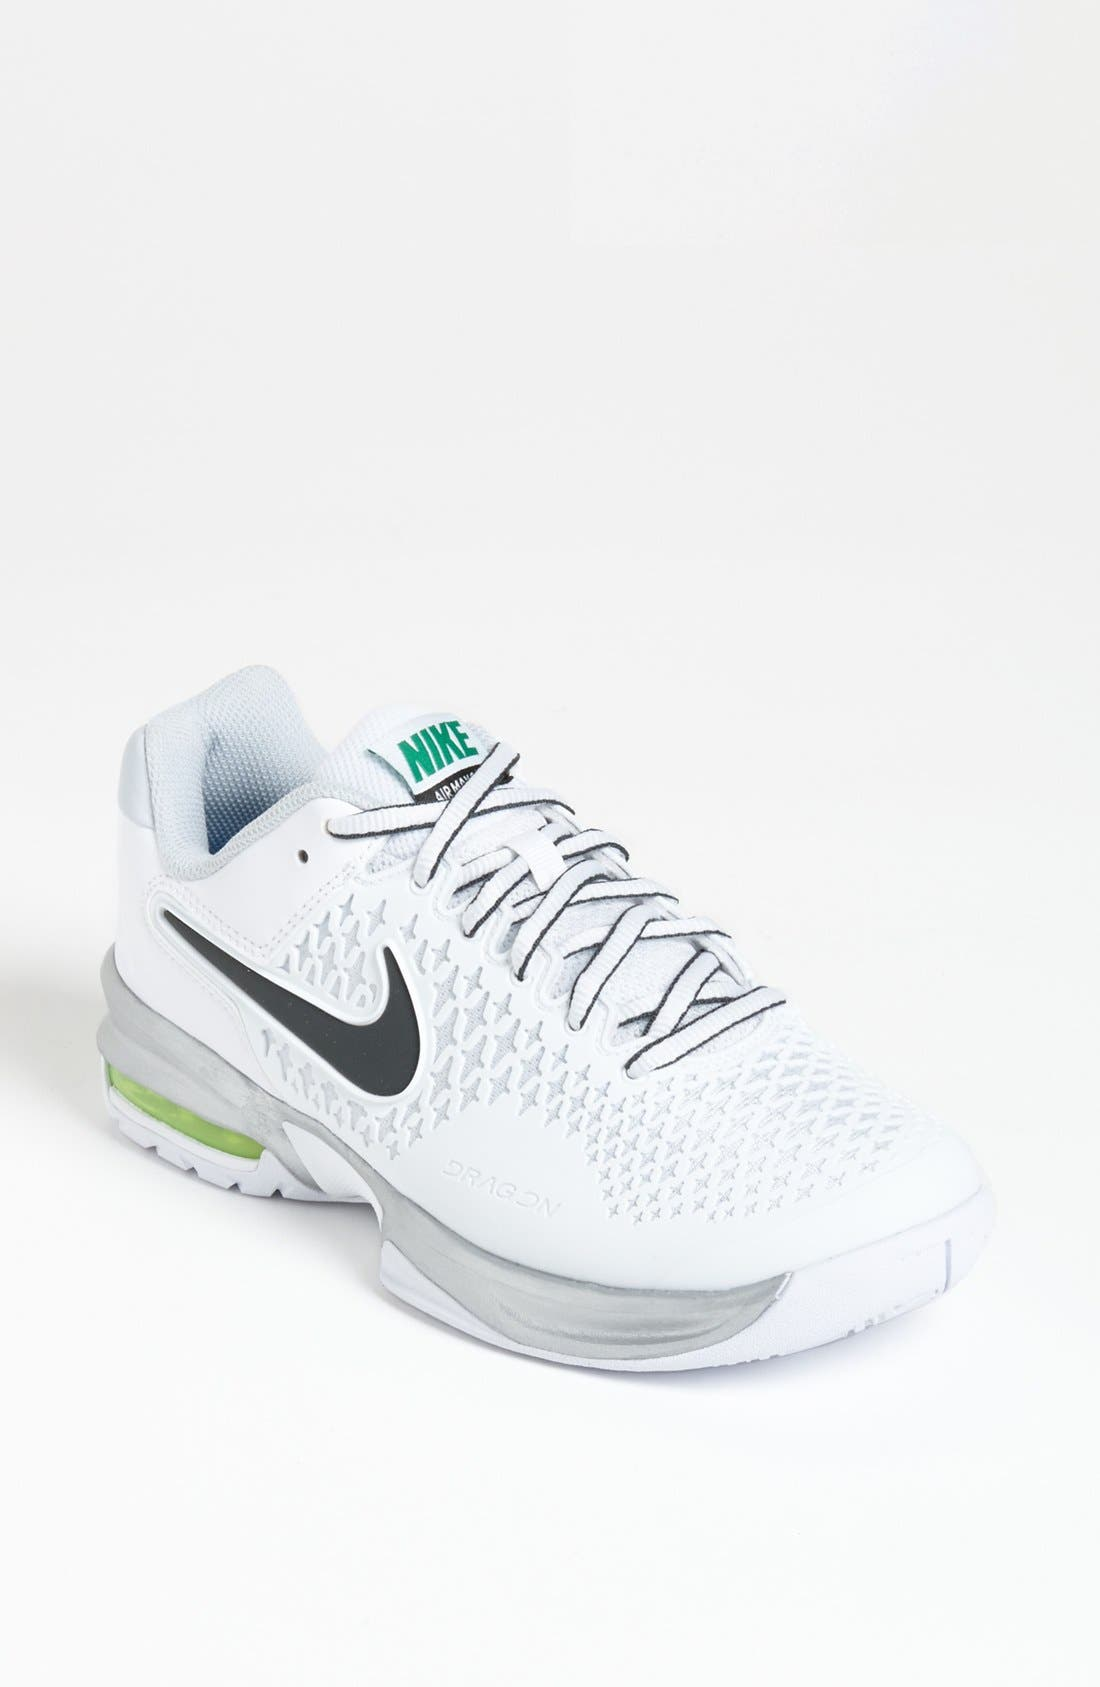 Alternate Image 1 Selected - Nike 'Air Max Cage' Tennis Shoe (Women) (Regular Retail Price: $115.00)